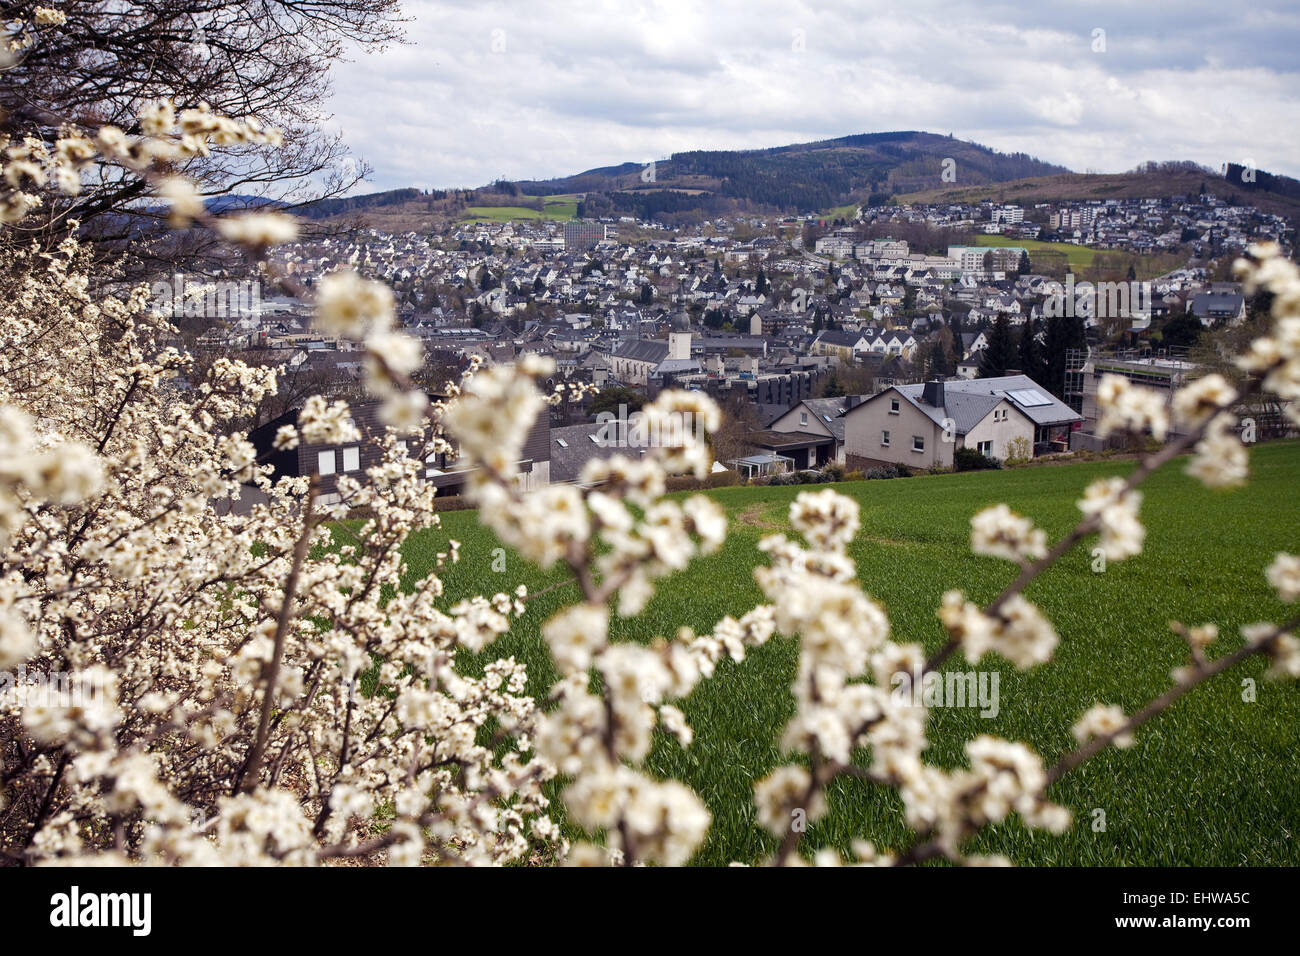 City view from Meschede with hawthorn hedge. - Stock Image